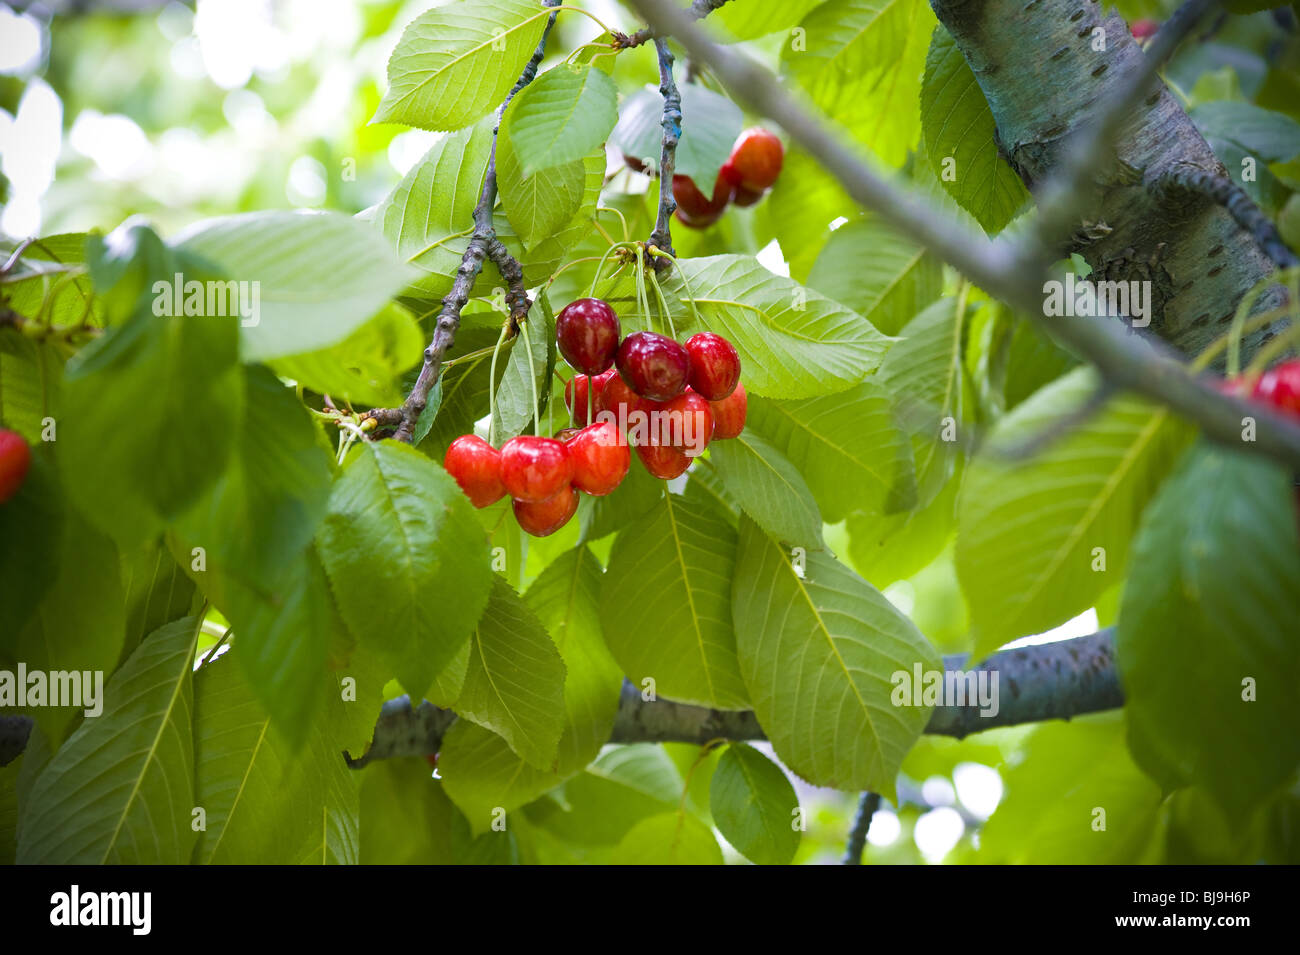 Chierries on a tree - Stock Image